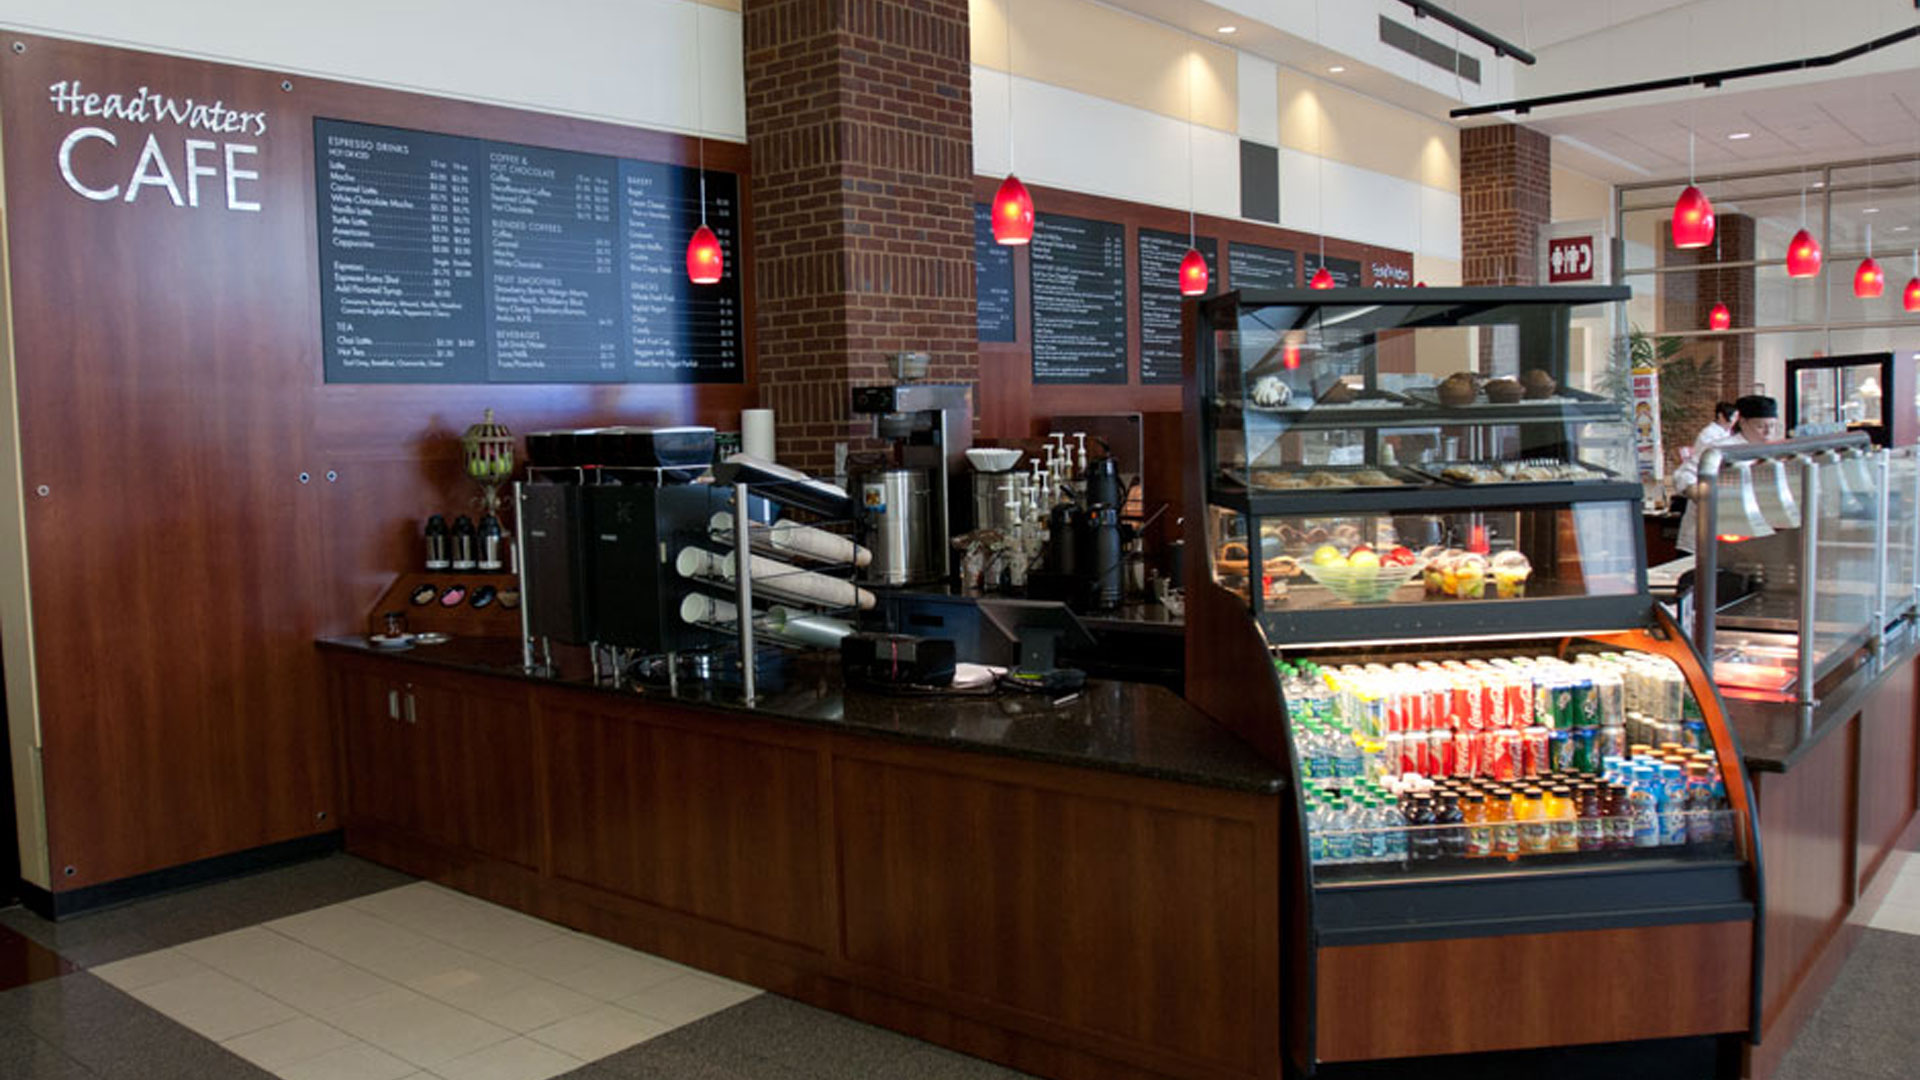 Headwaters Cafe at RiverCentre